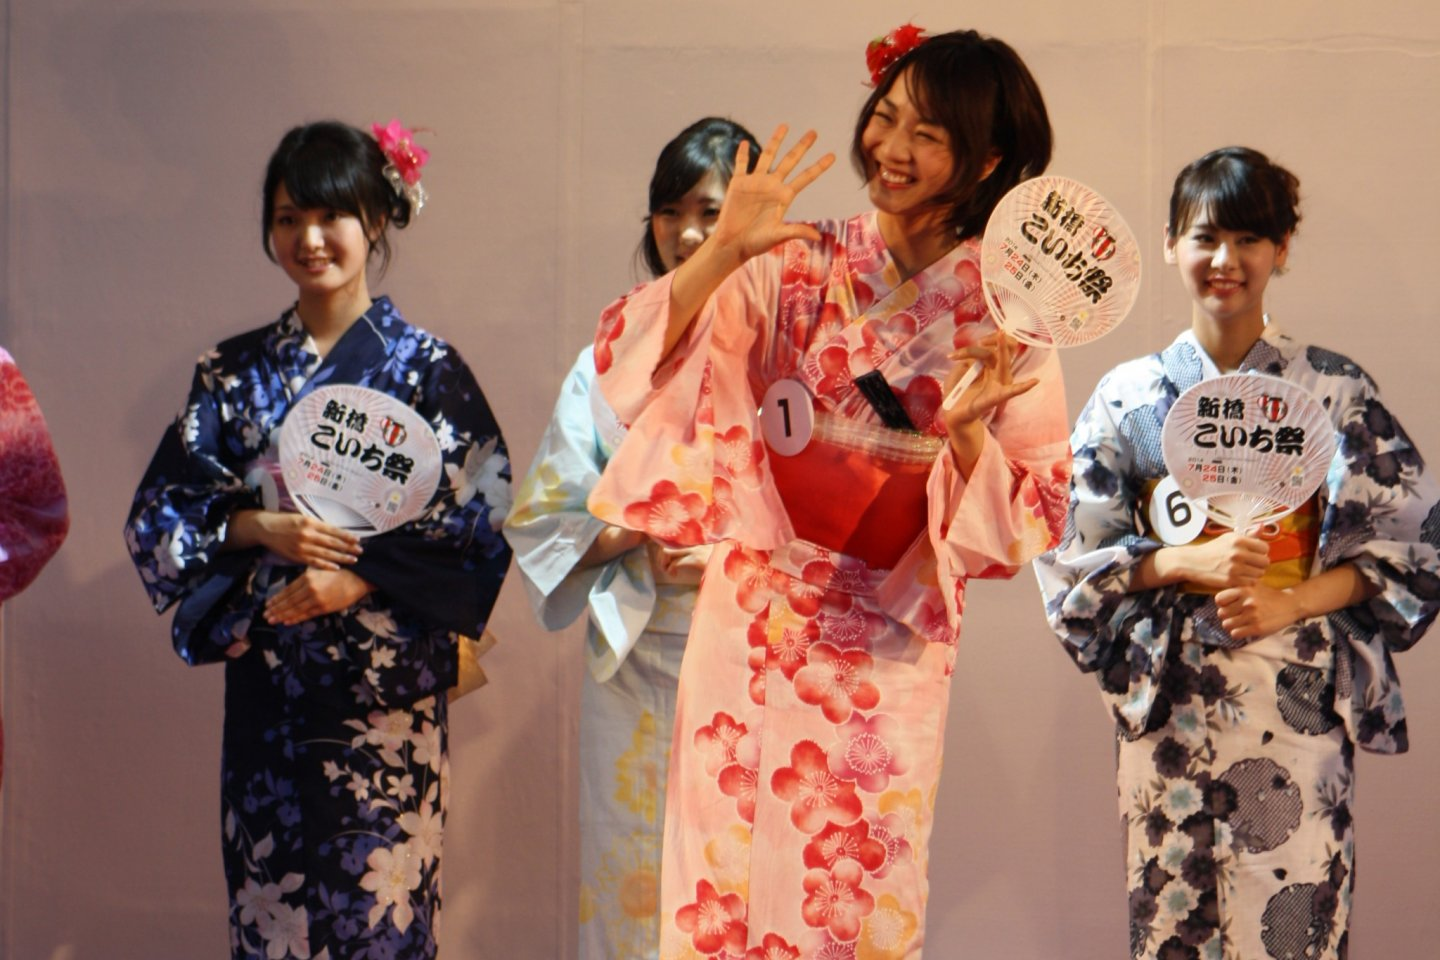 The yukata beauty contest begins on the main stage at SL Plaza